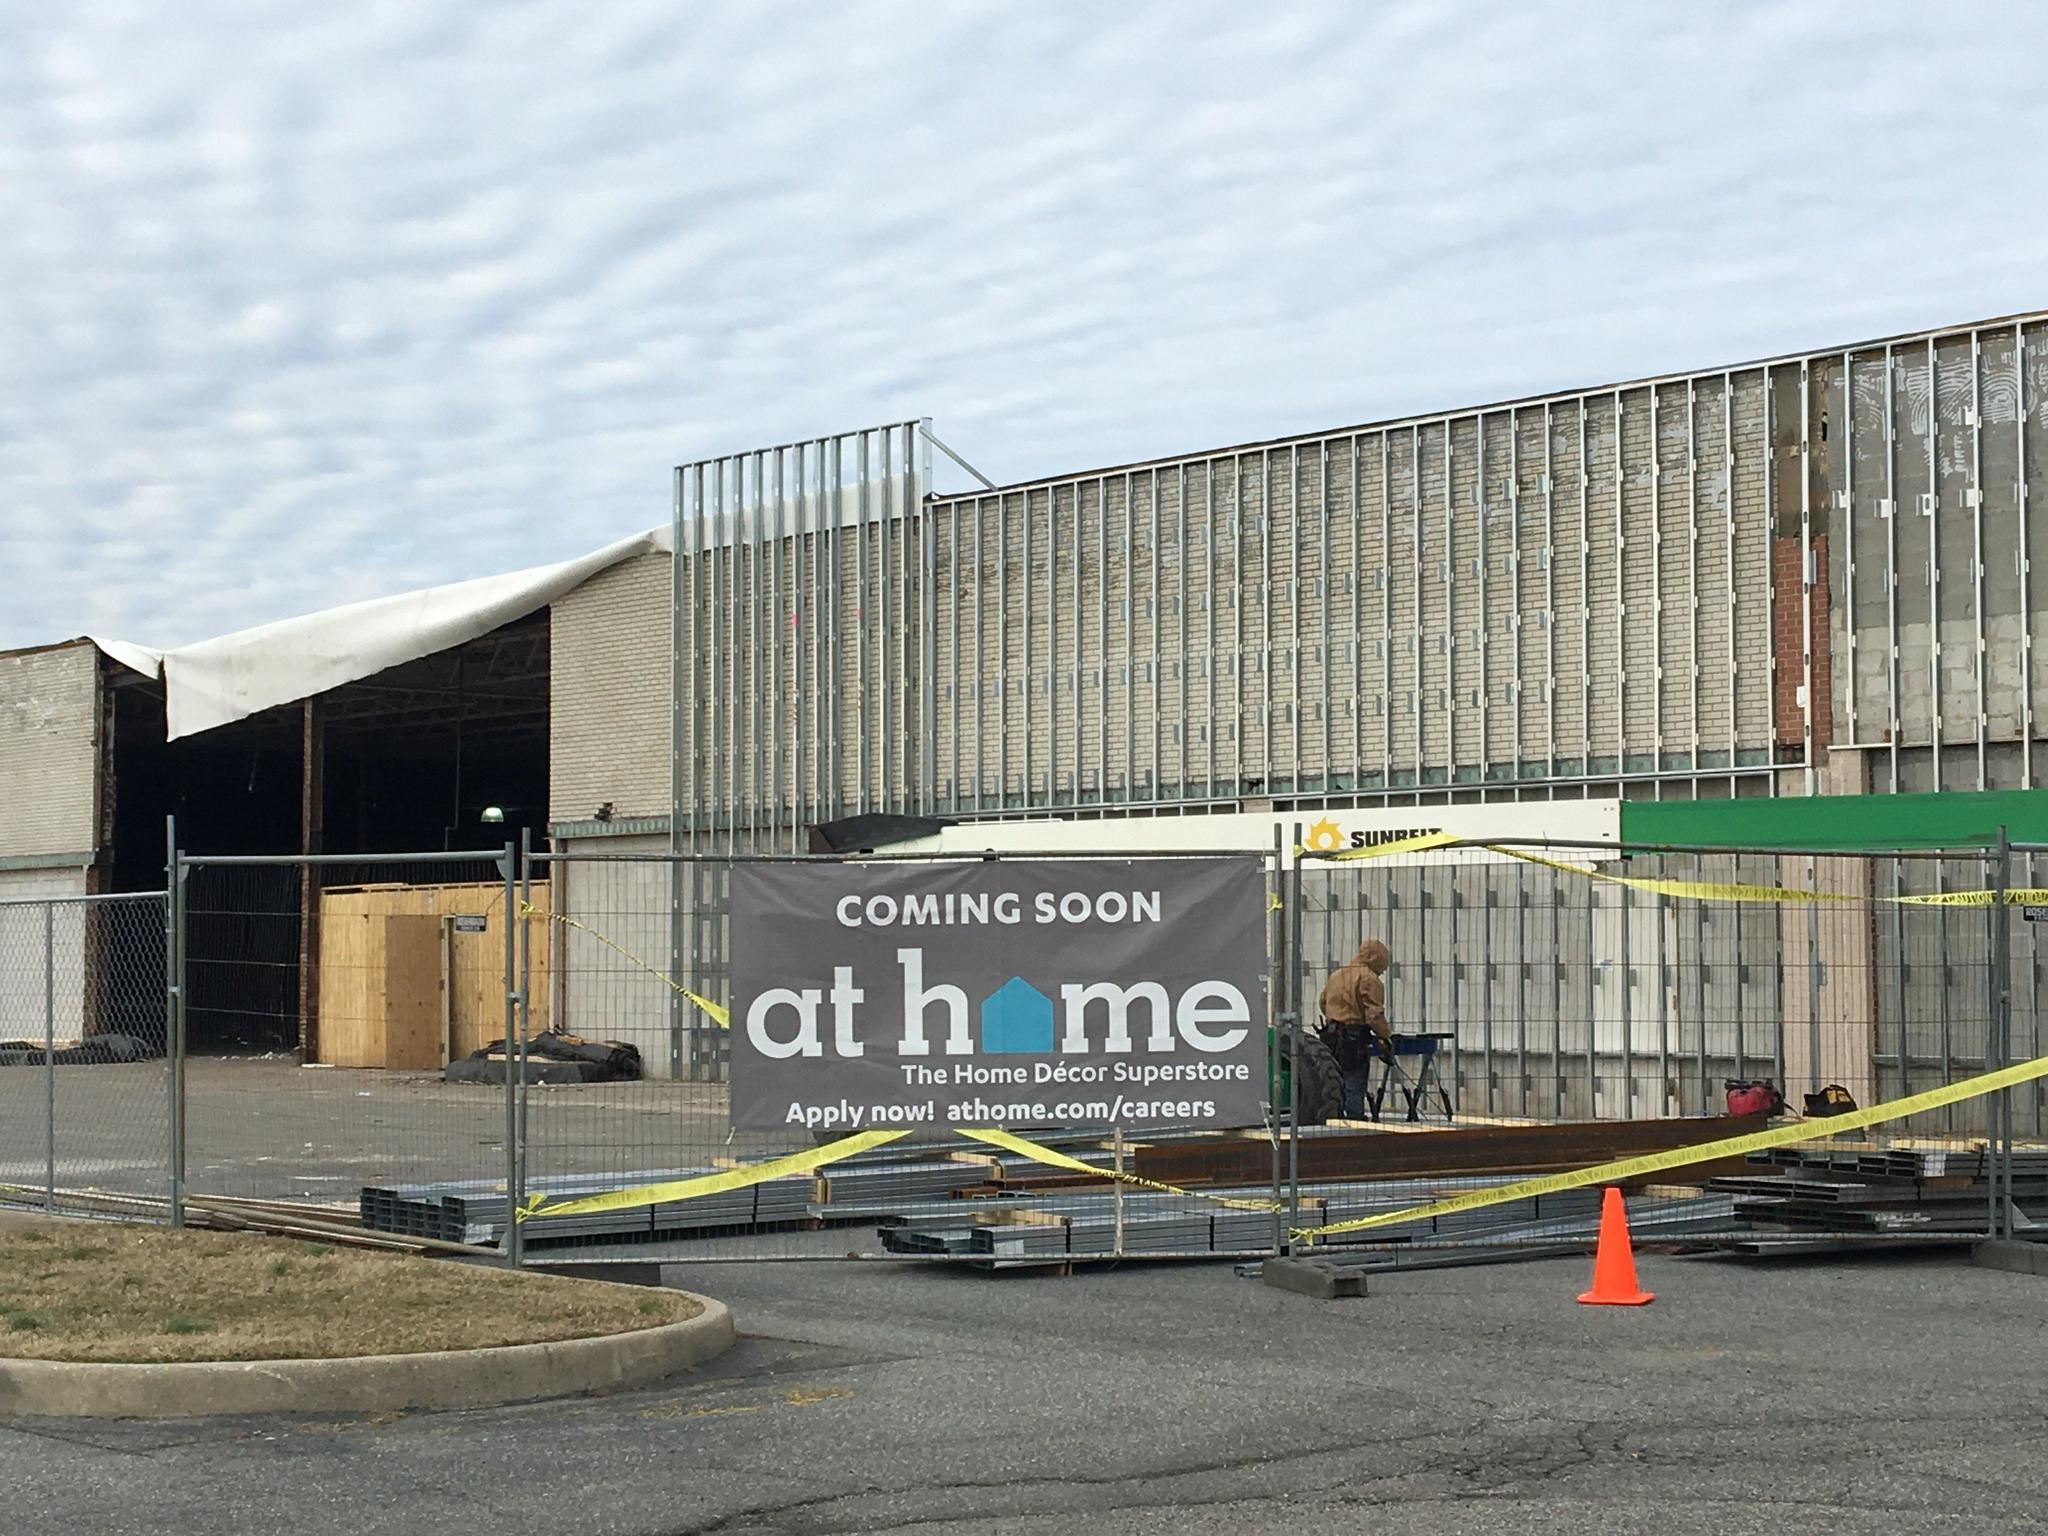 At Home store in Hampton to open in 2017 - Daily Press